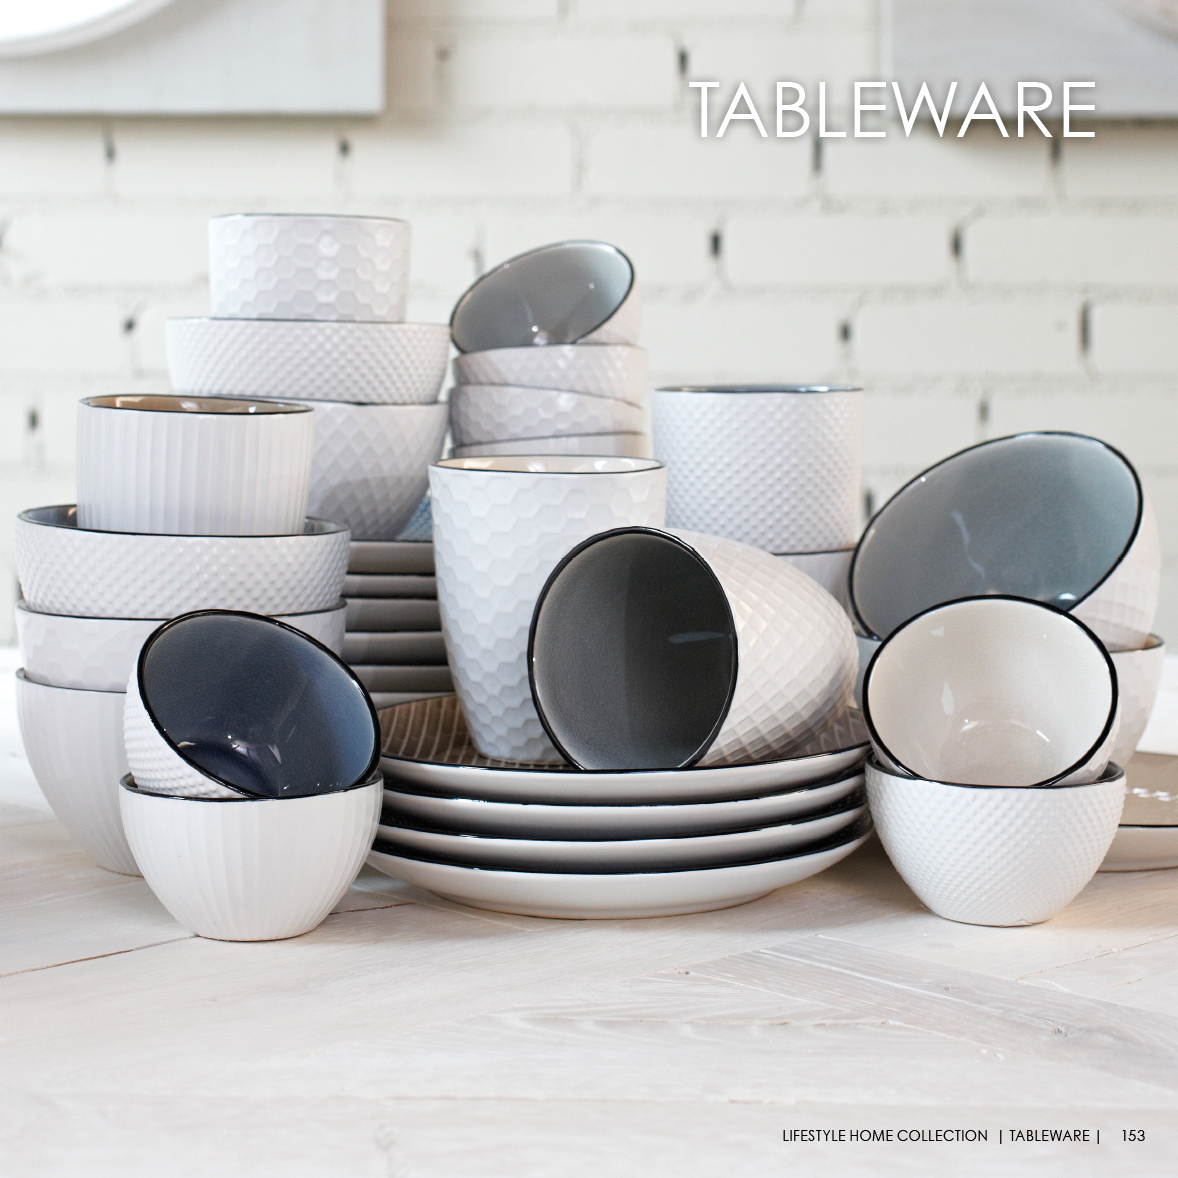 Tableware lifestyle home collection - Lifestyle home collection ...